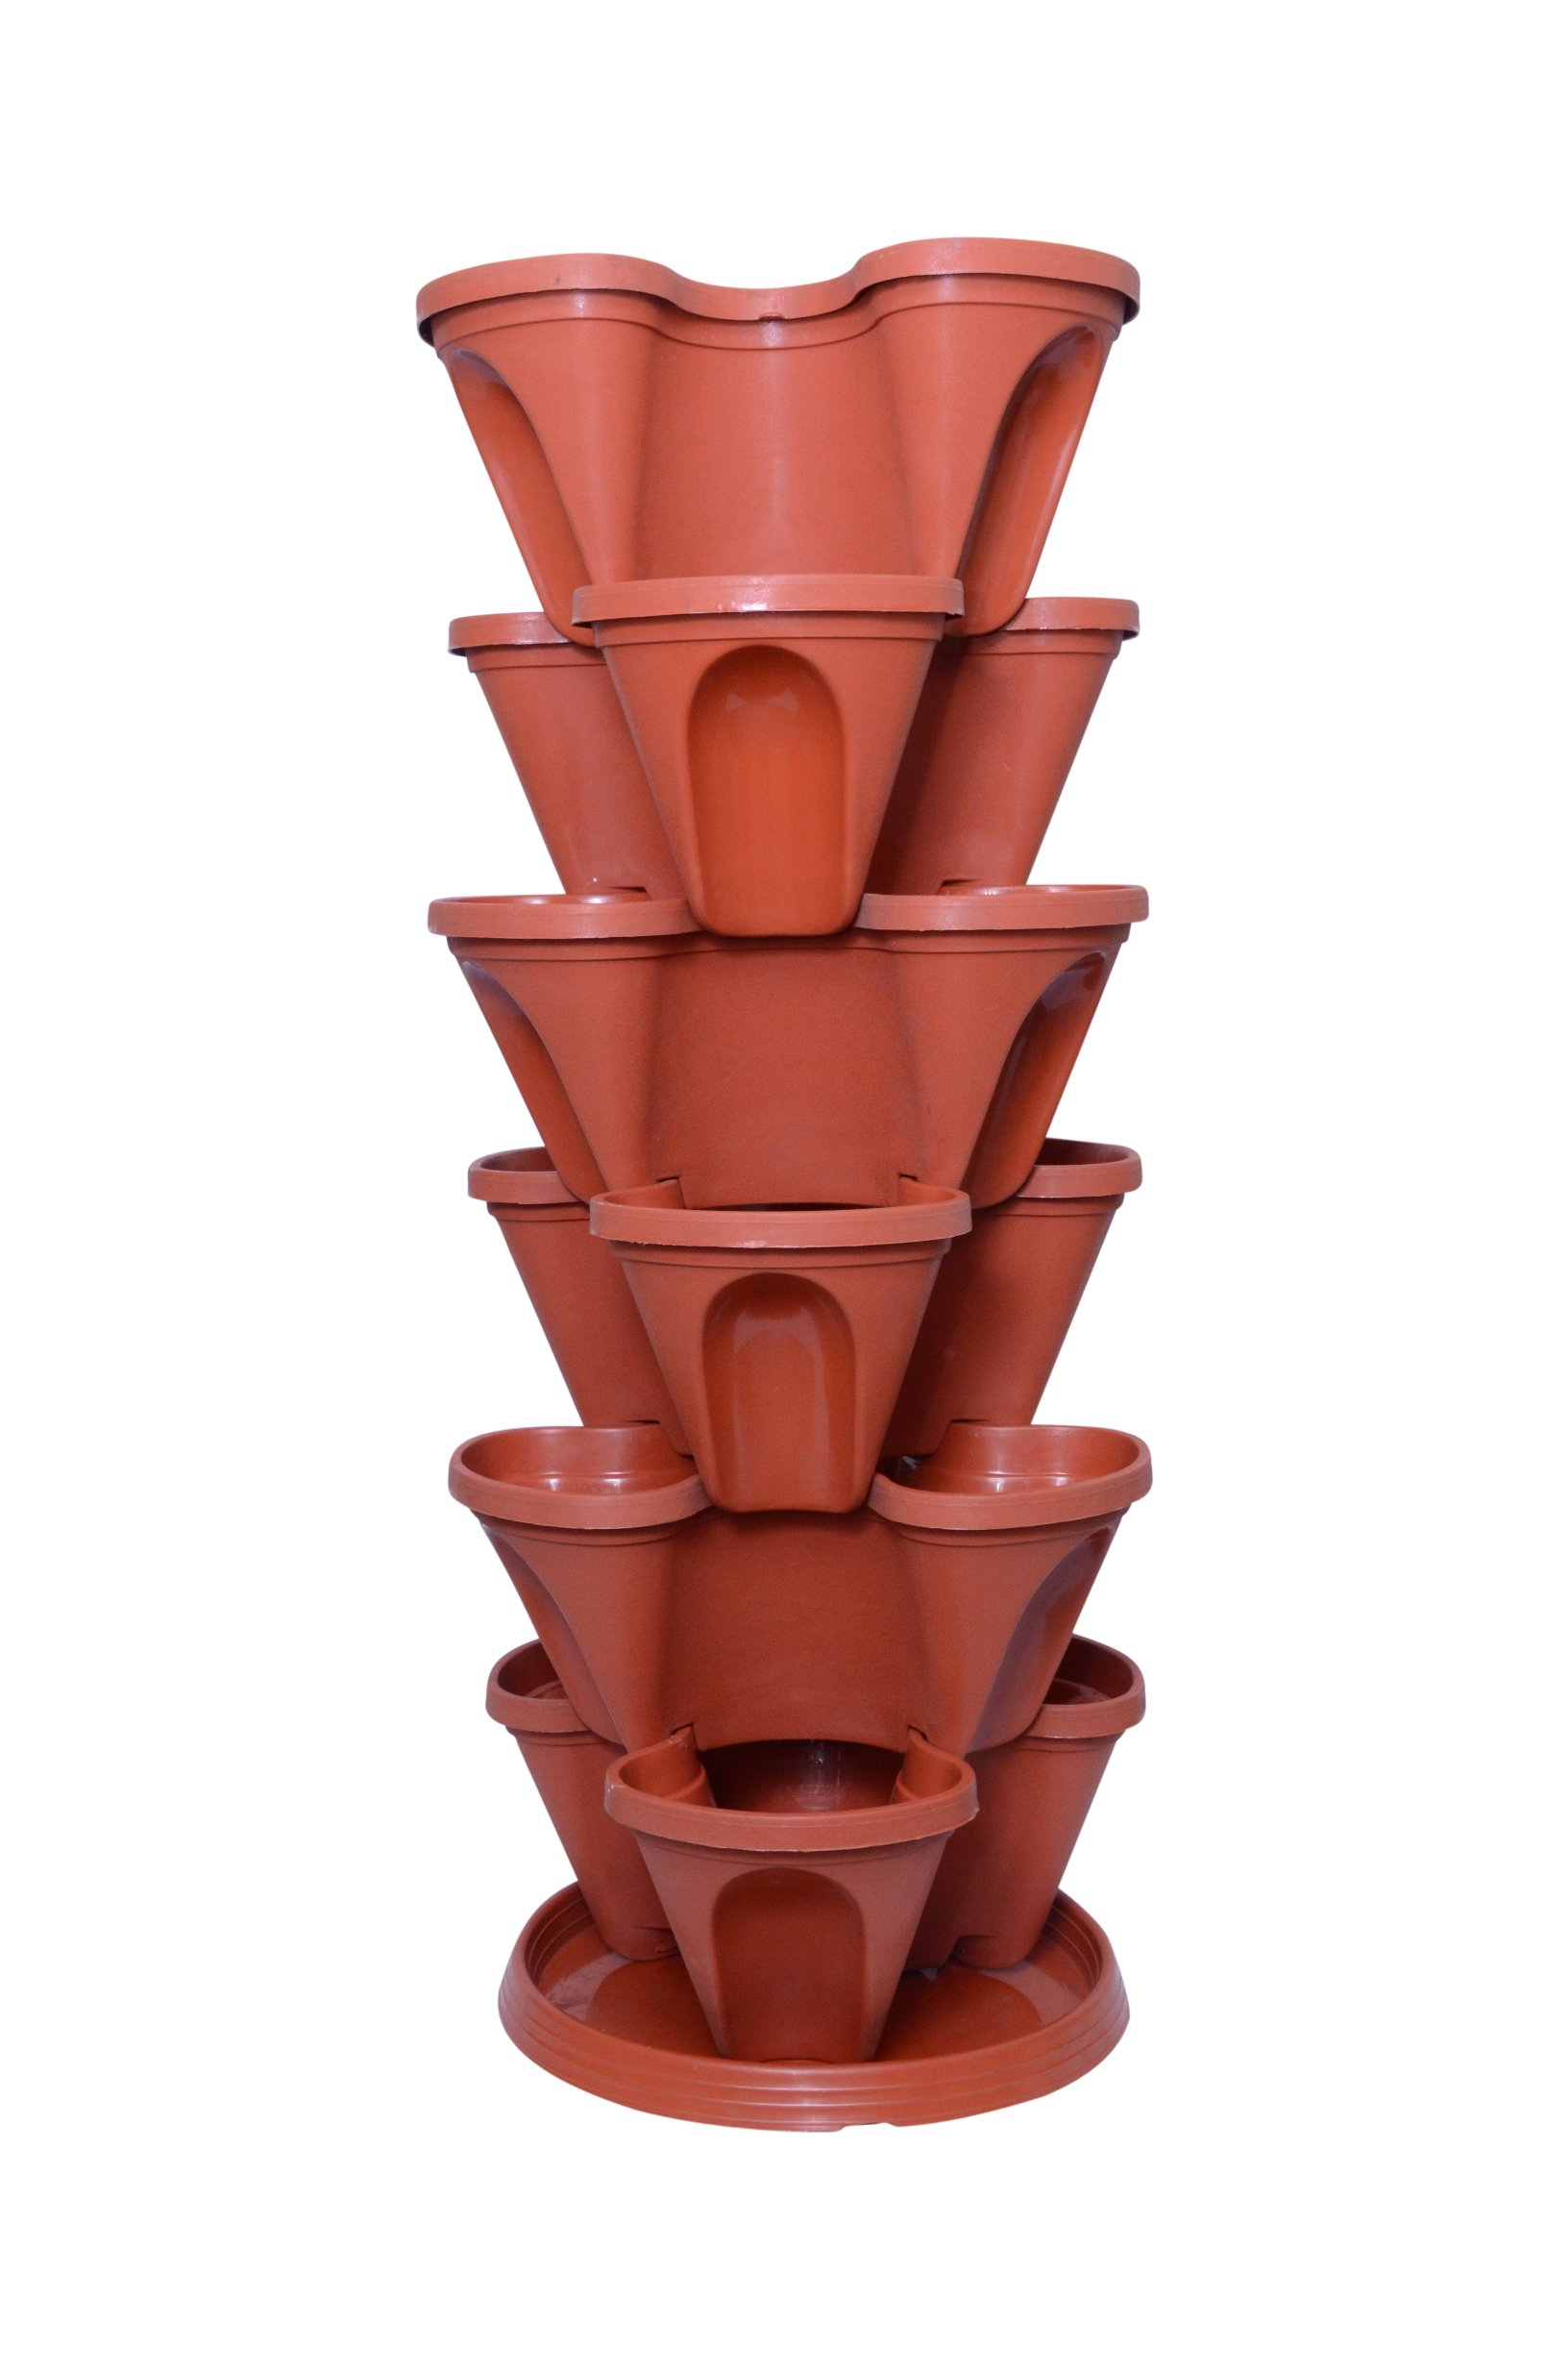 Gardens Need Plastic Stack-A-Pot for Floor Set (Terracotta, 7-Pieces) product image